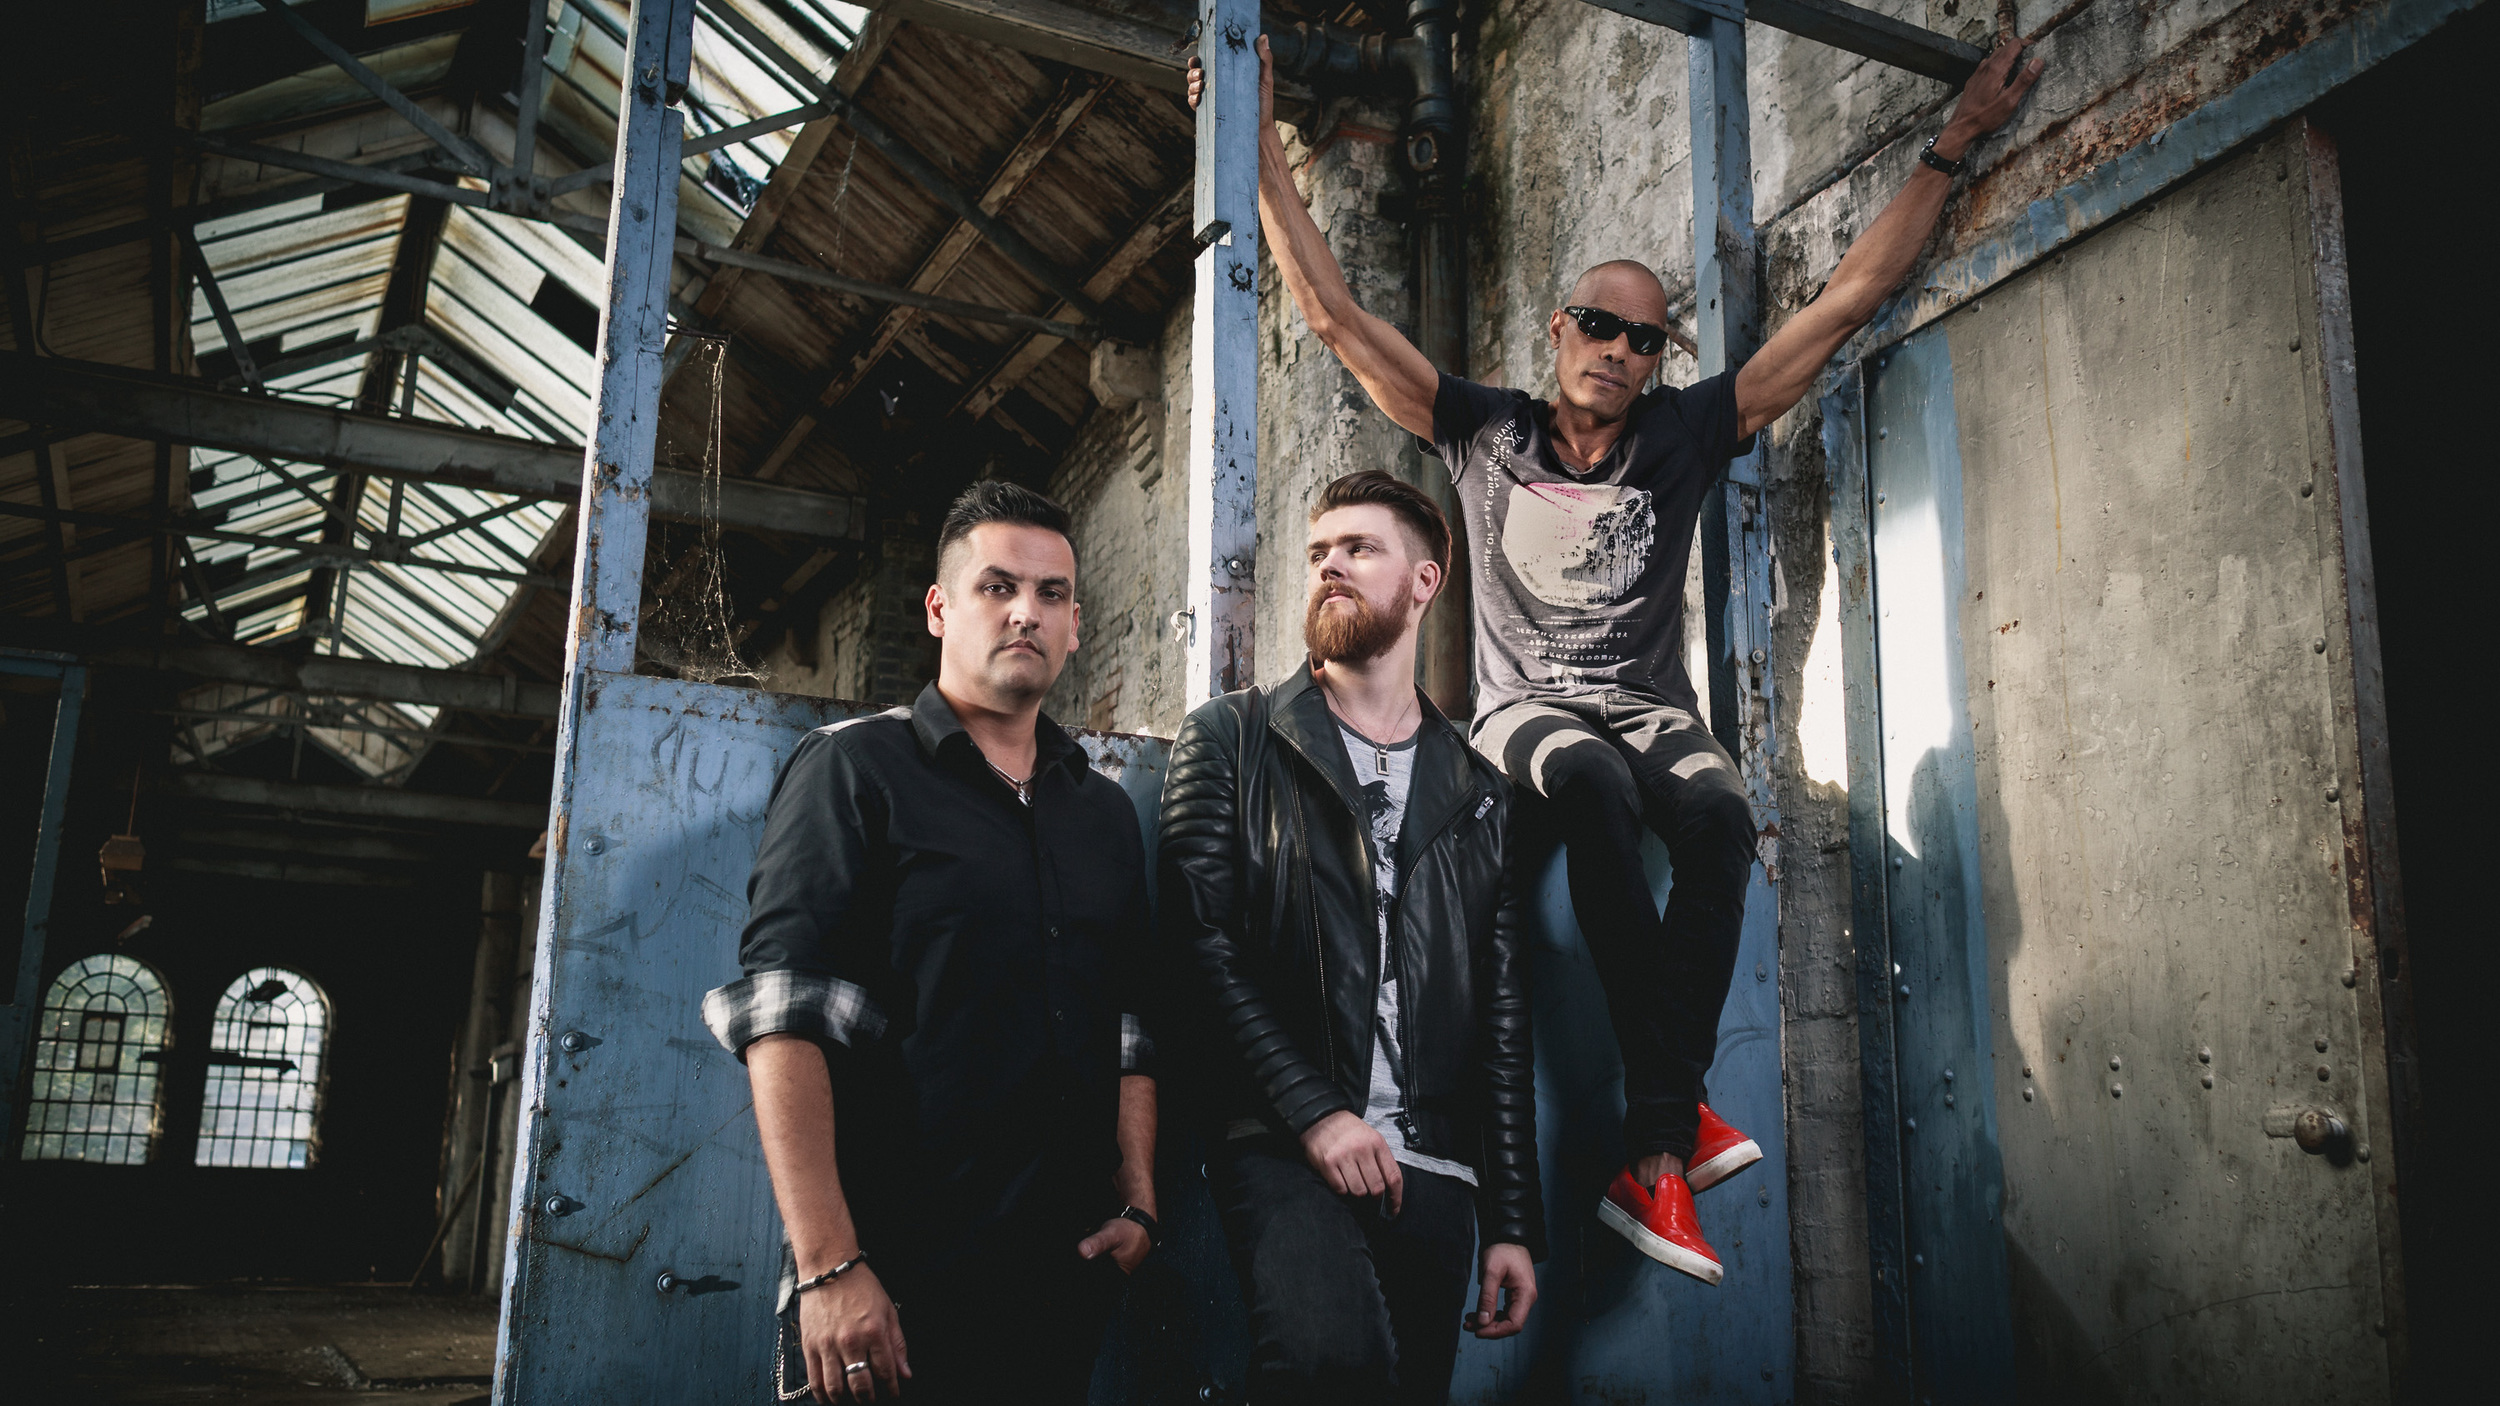 Band promo photo shoot for rock band Black Orchid Empire in abandoned industrial building in East London, UK